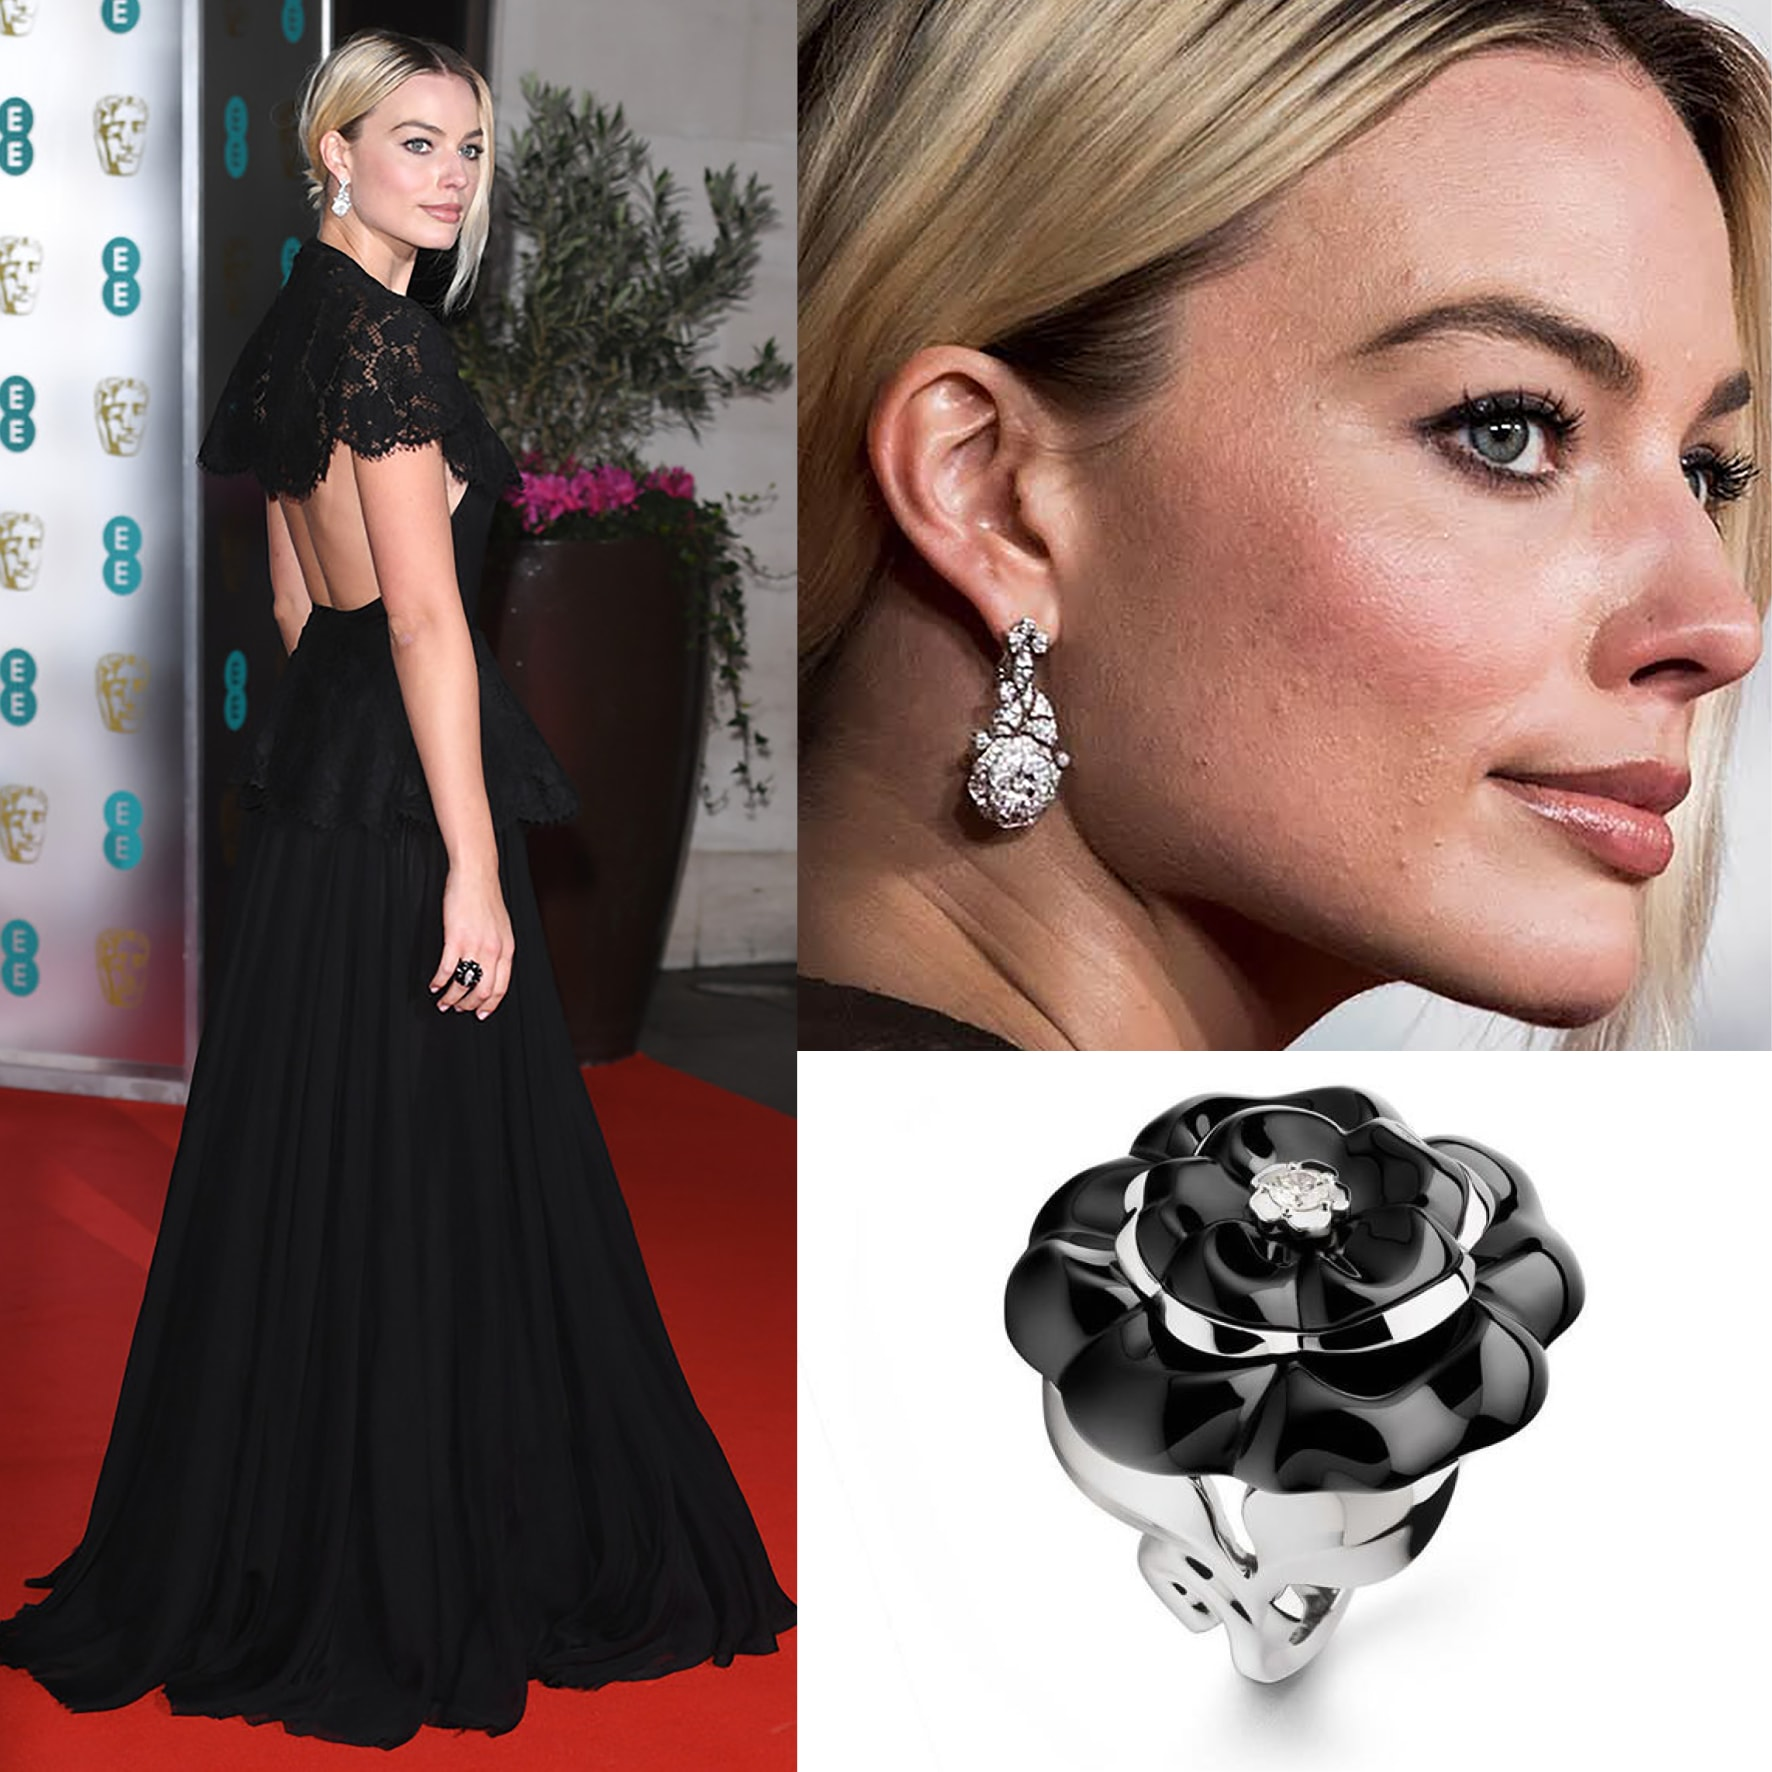 MARGOT ROBBIE at BAFTA 2020